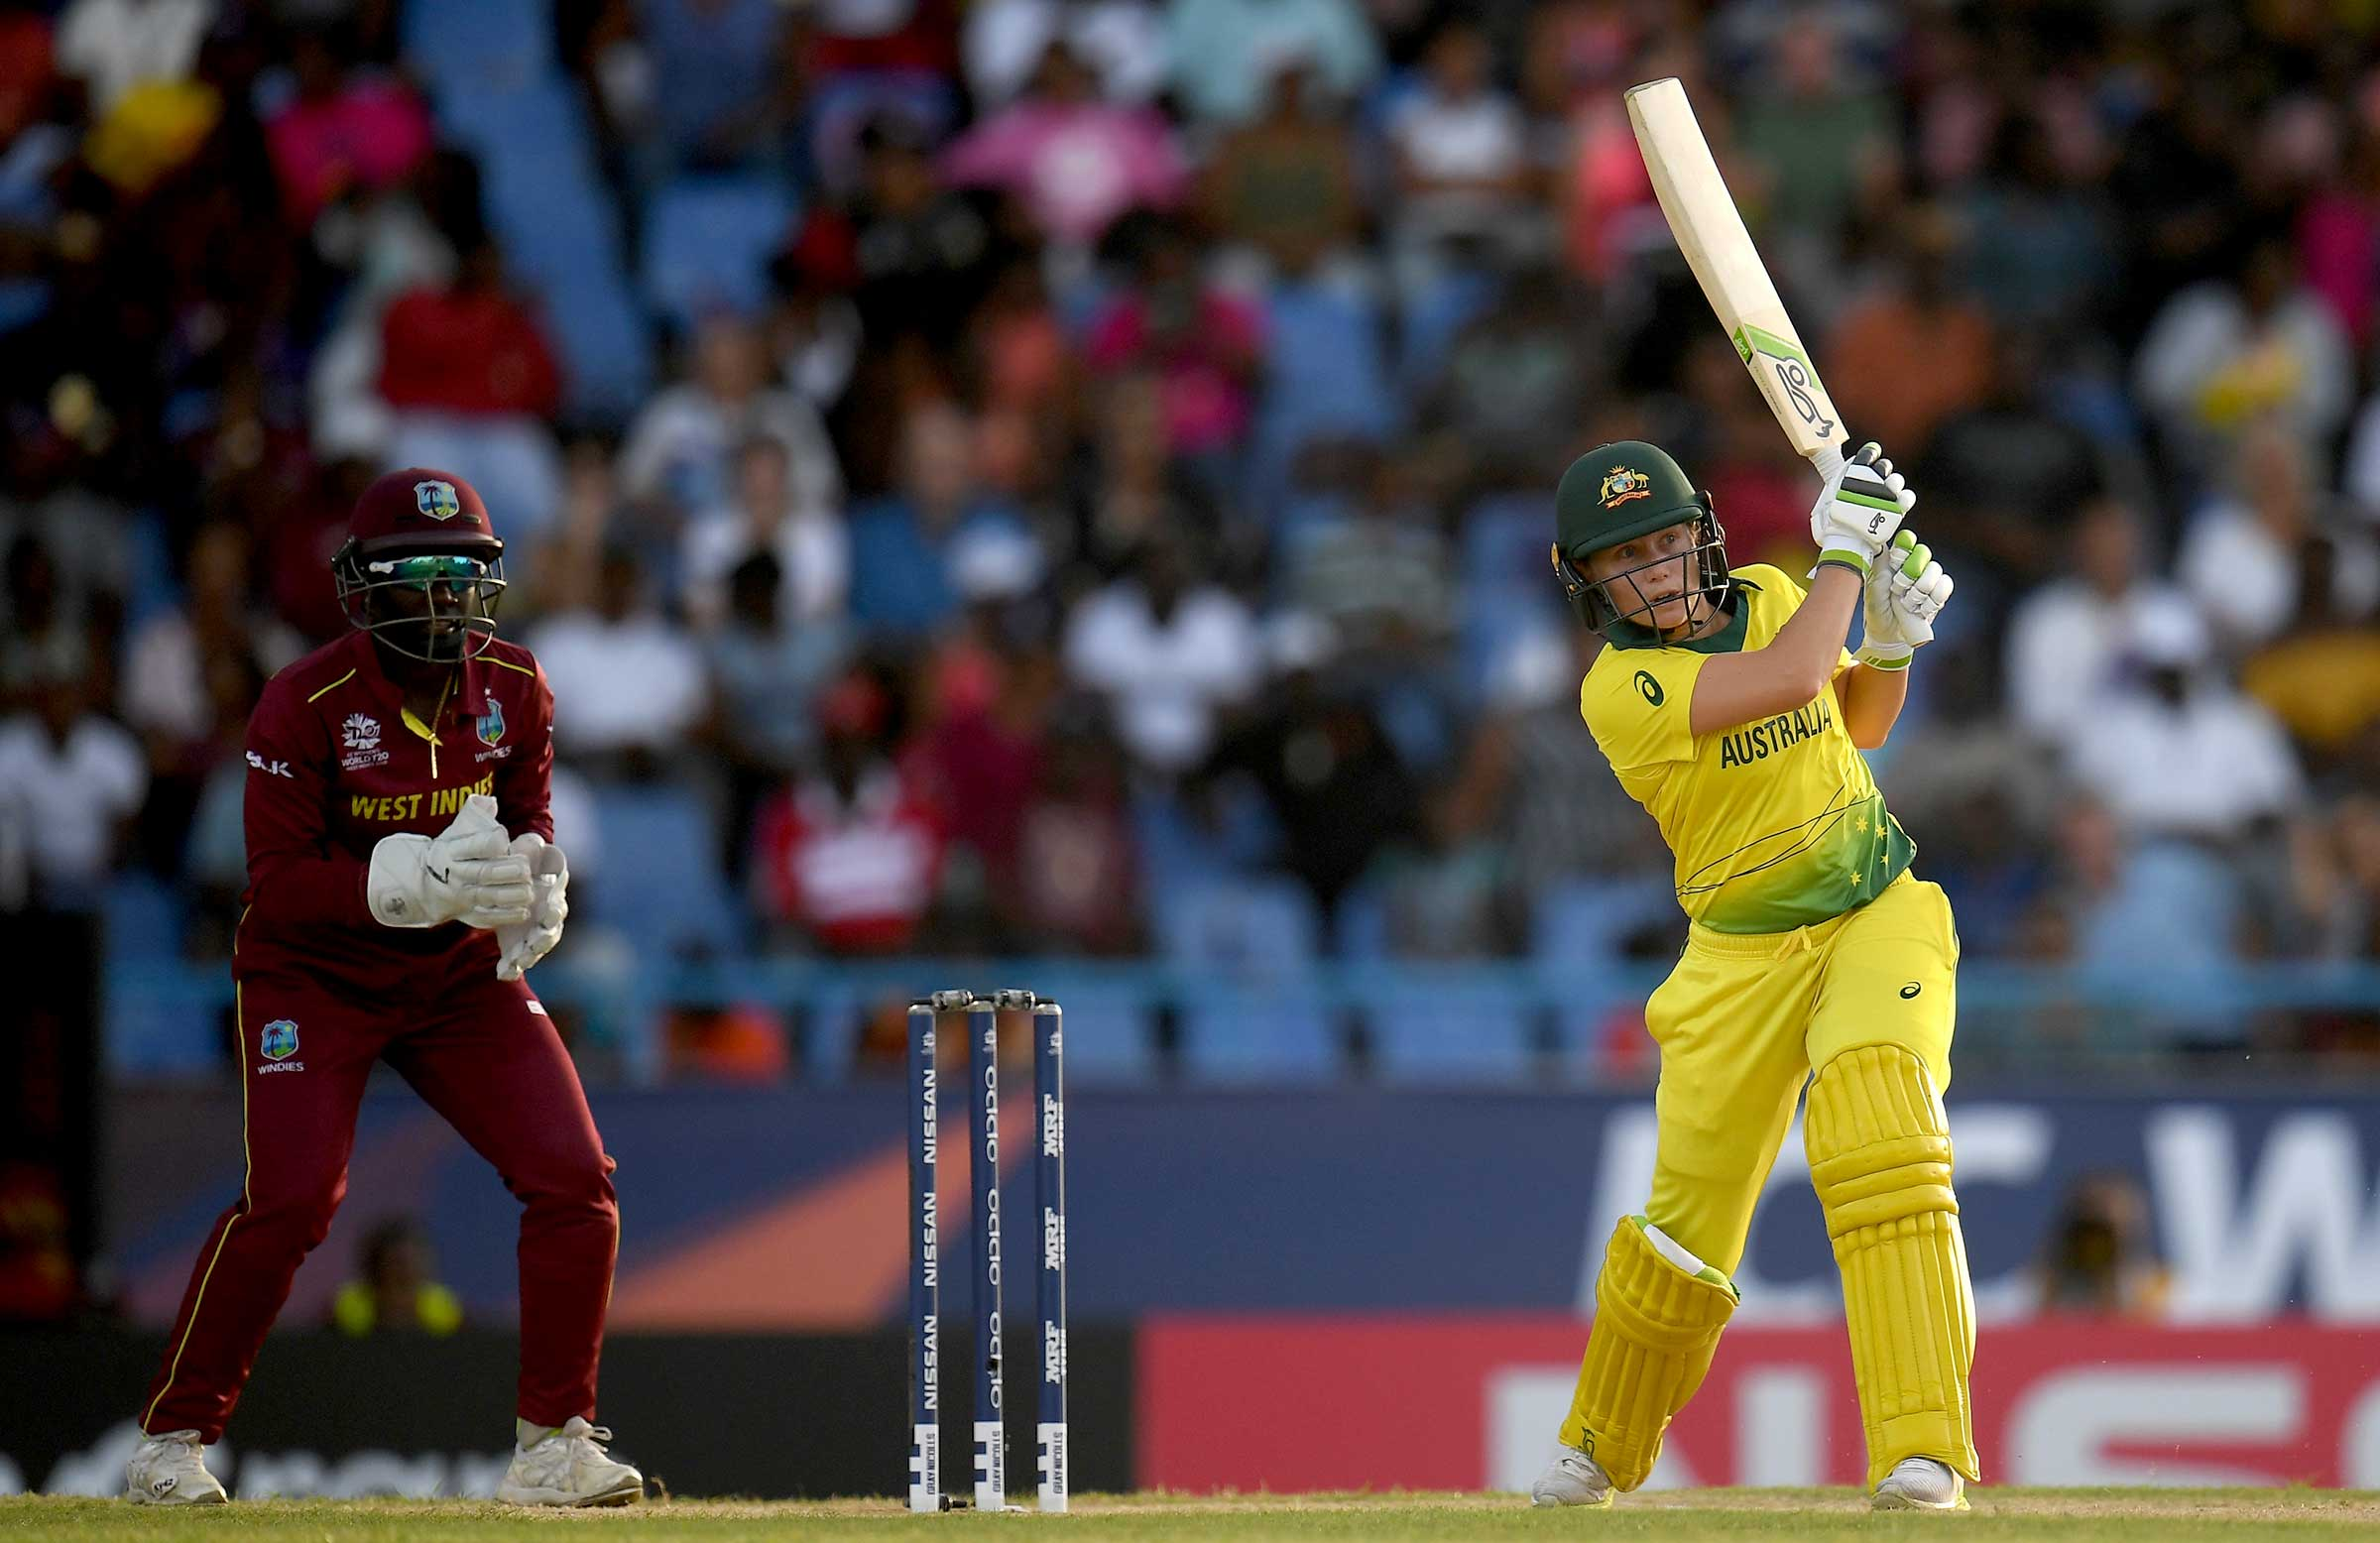 Alyssa Healy goes on the attack for Australia // cricket.com.au